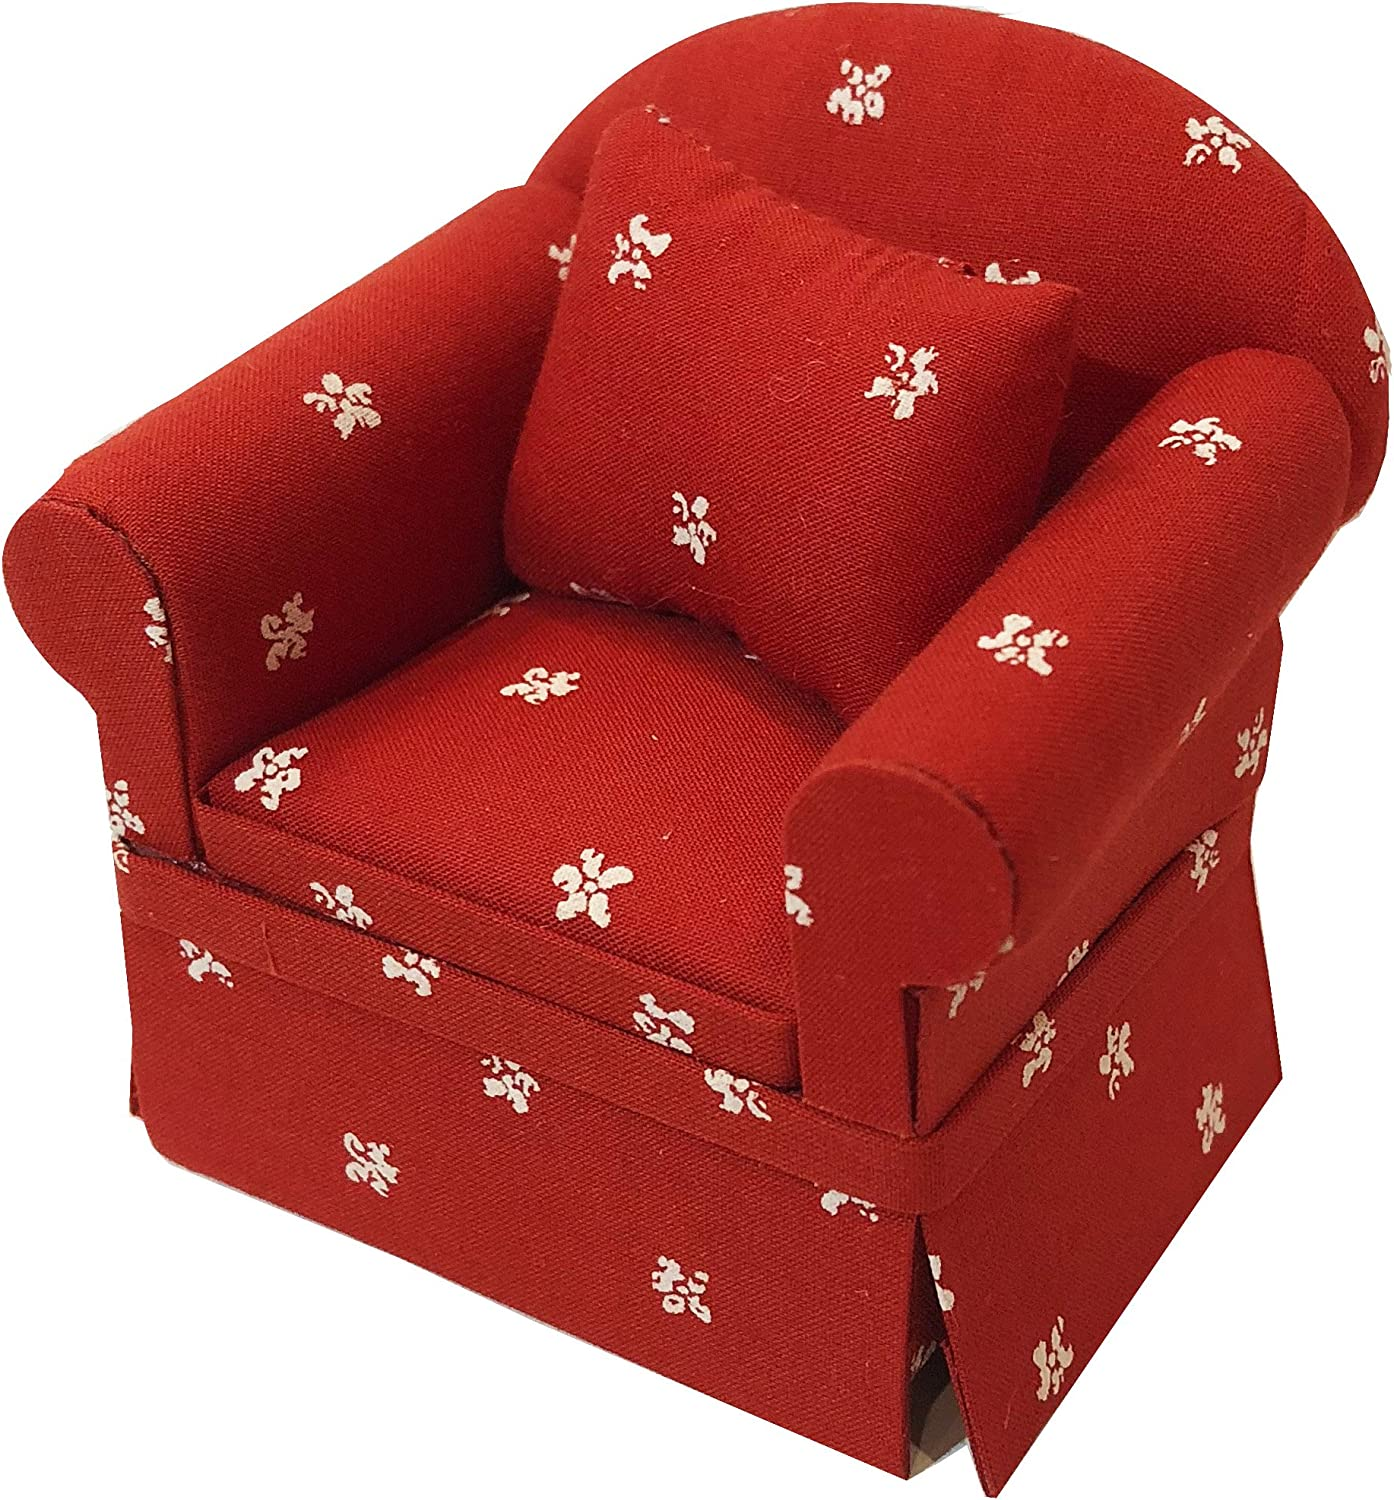 Inusitus Miniature Dollhouse Sofa Arm Chair - Dolls House Furniture Couch - White with Red Pattern - 1/12 Scale (Red White Stars)